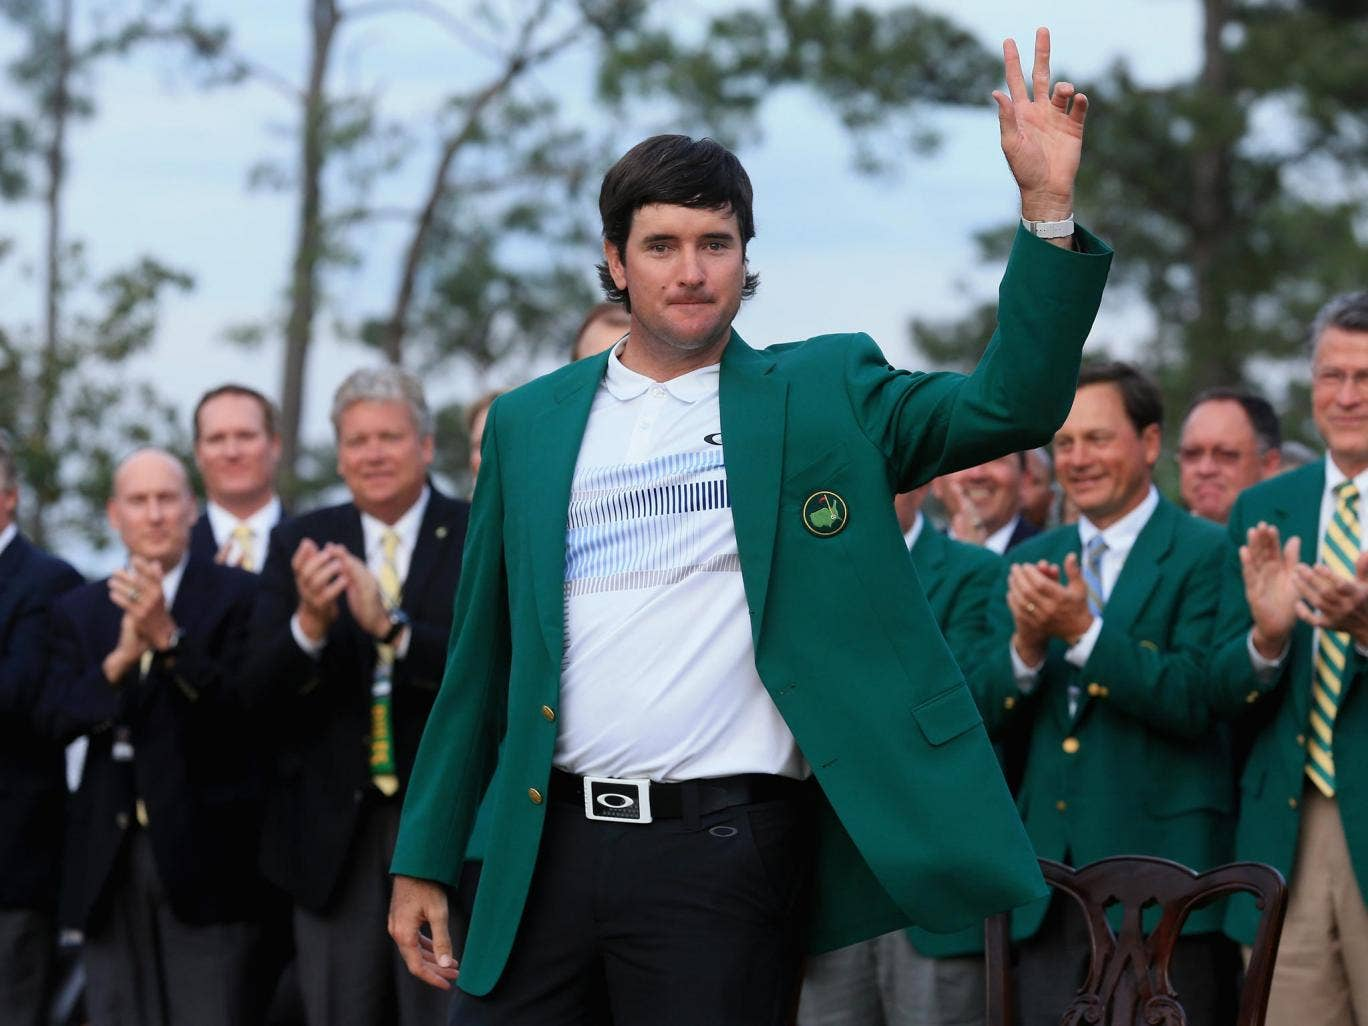 Bubba Watson soaks up the applause at the Augsta National course after his 2014 Masters success